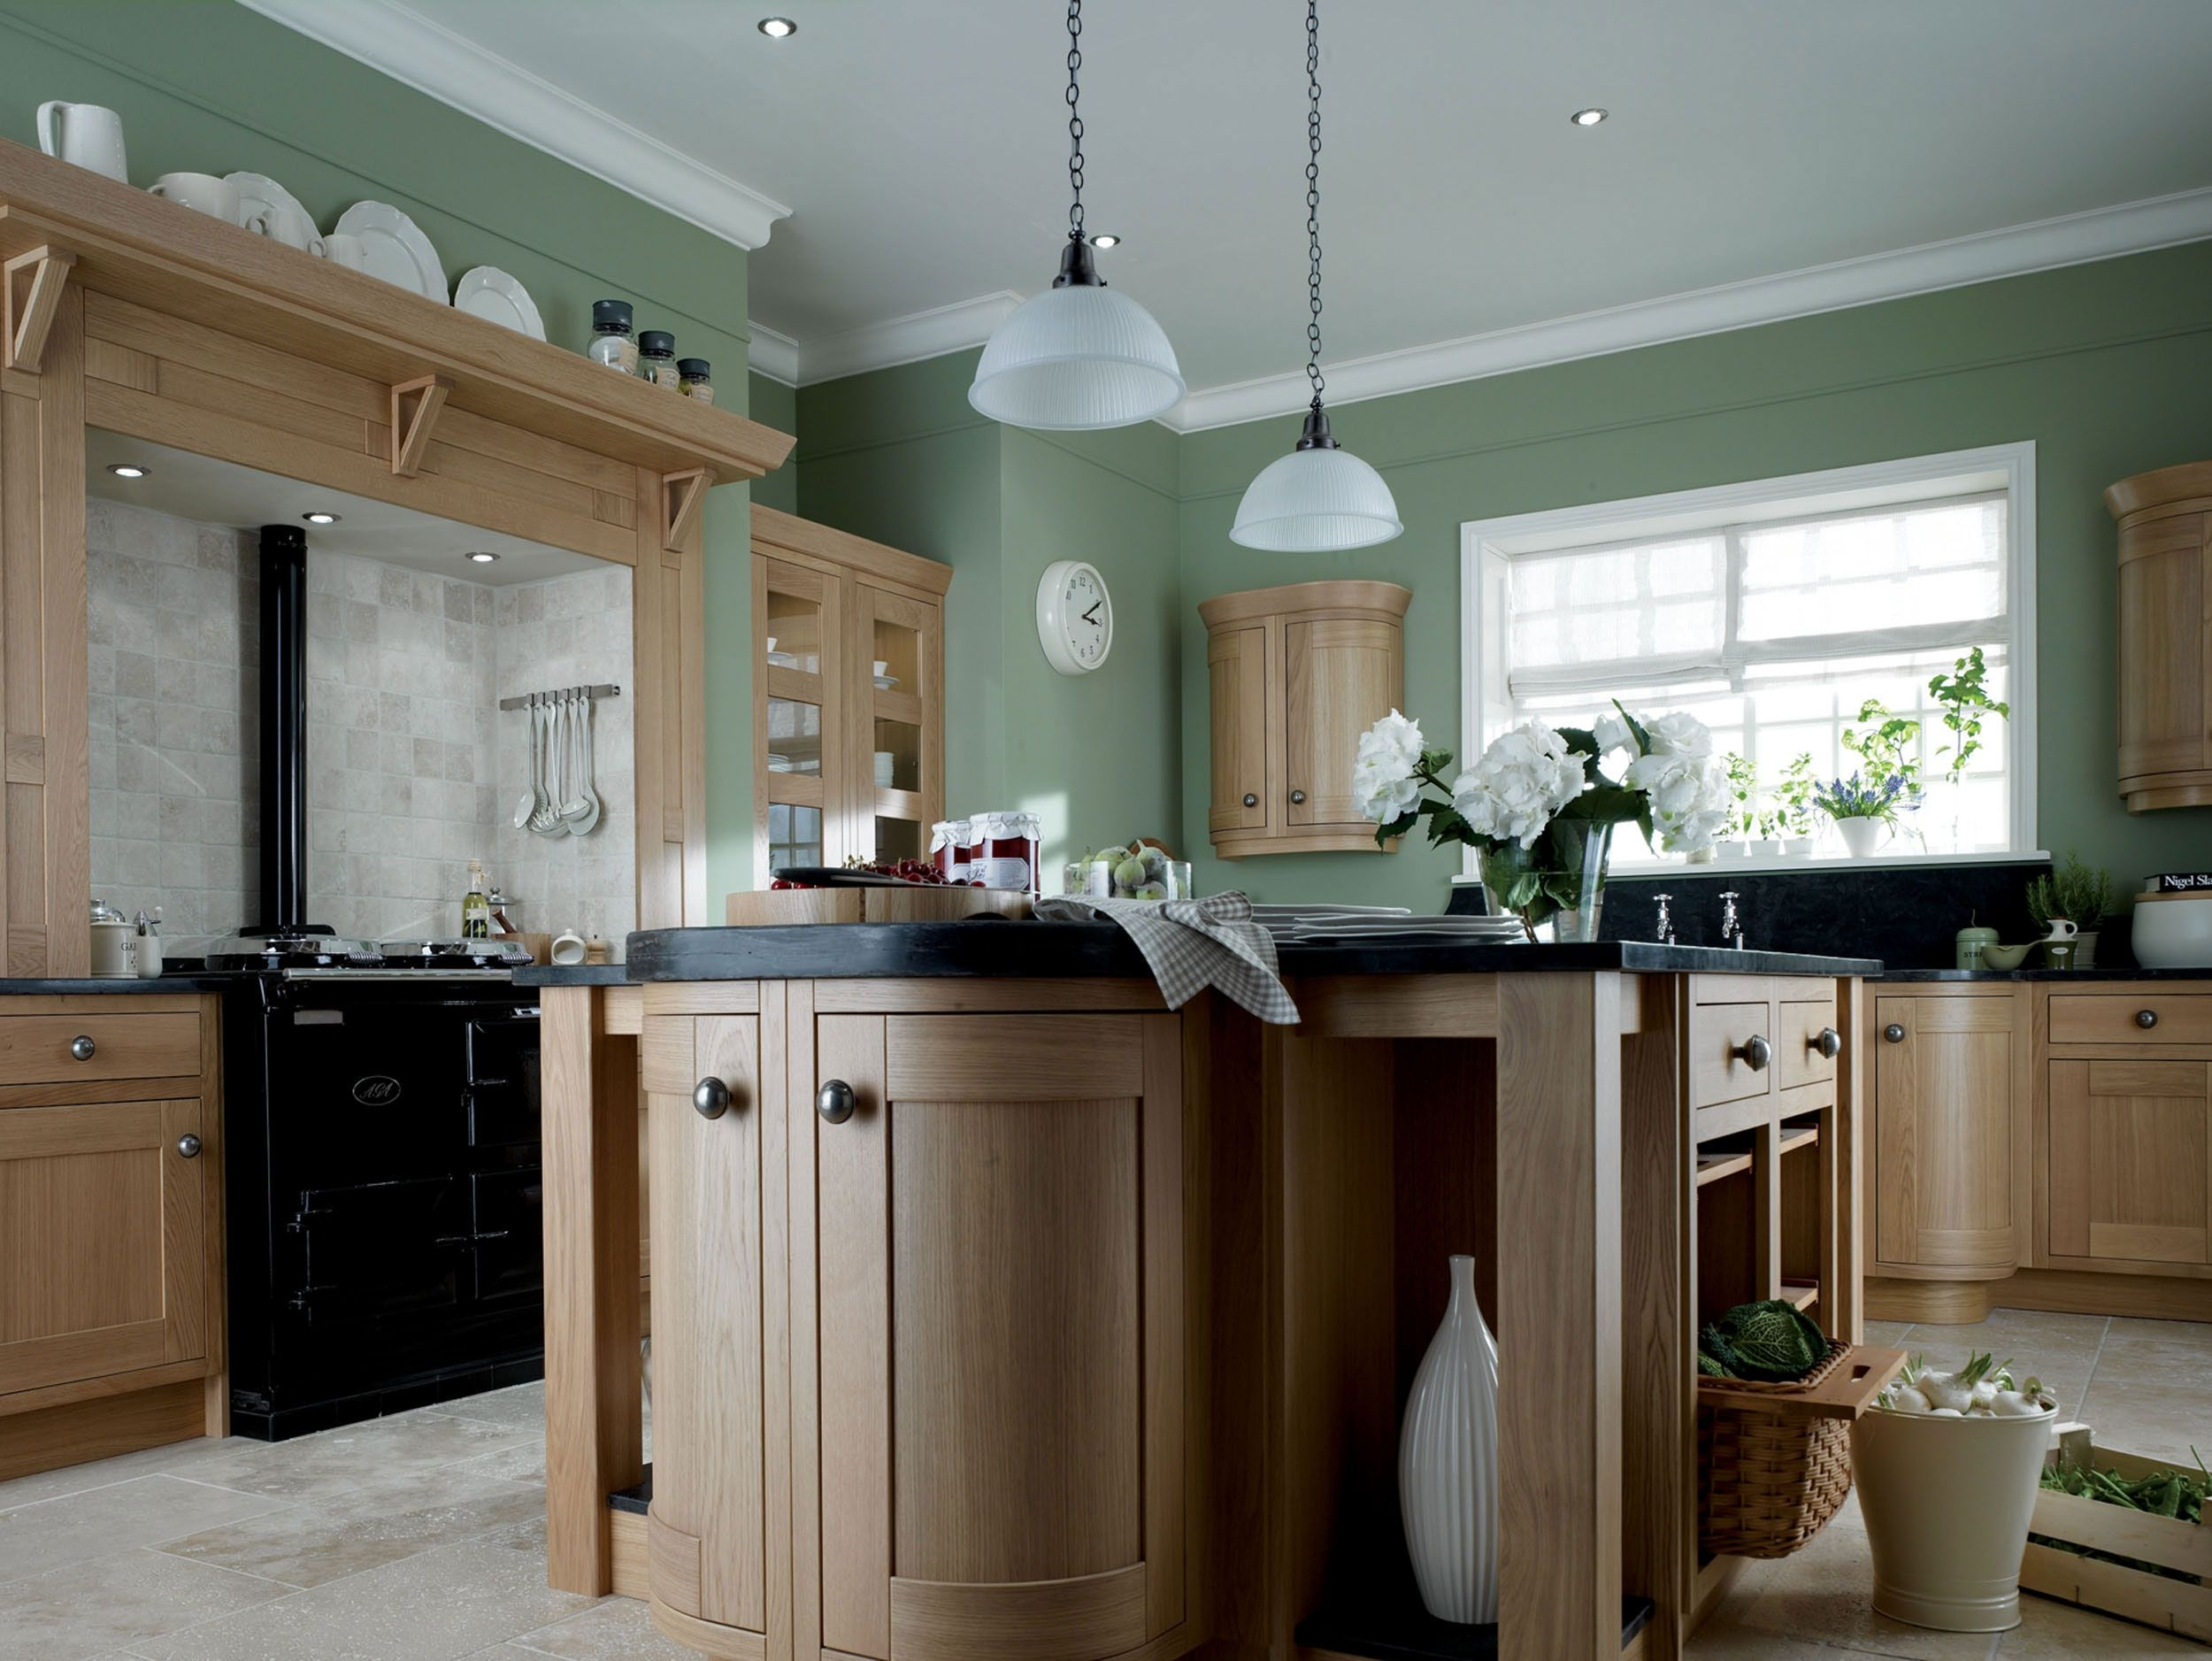 Modern Kitchen Design Idea with Green Lime Wall Paint Color and